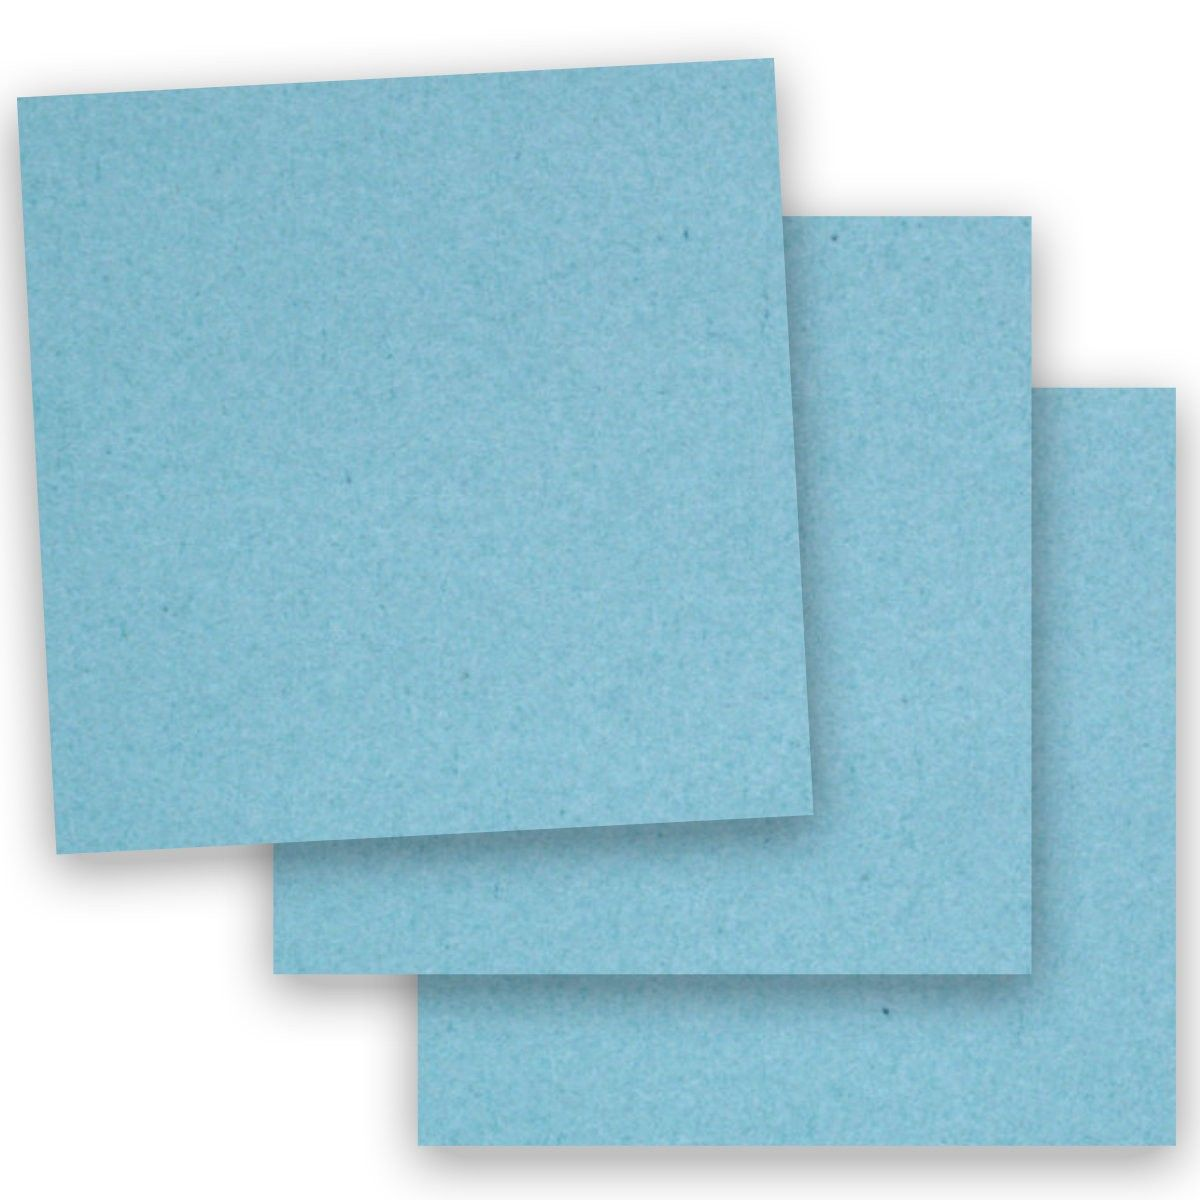 Embossed Card Stock Sheets or CardsEnvelopes Cloudy Sky